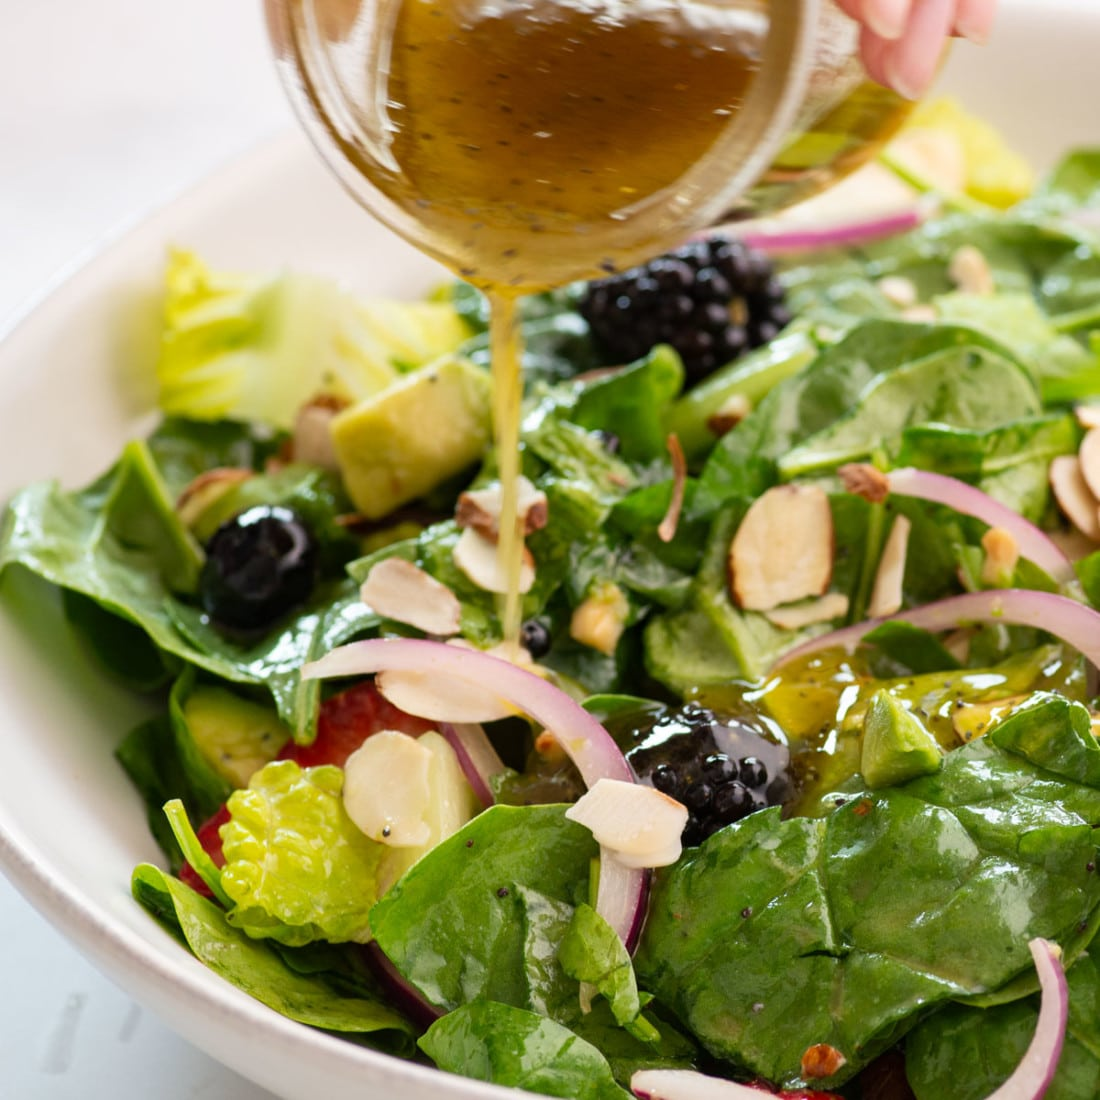 hand pouring dressing over salad in white bowl